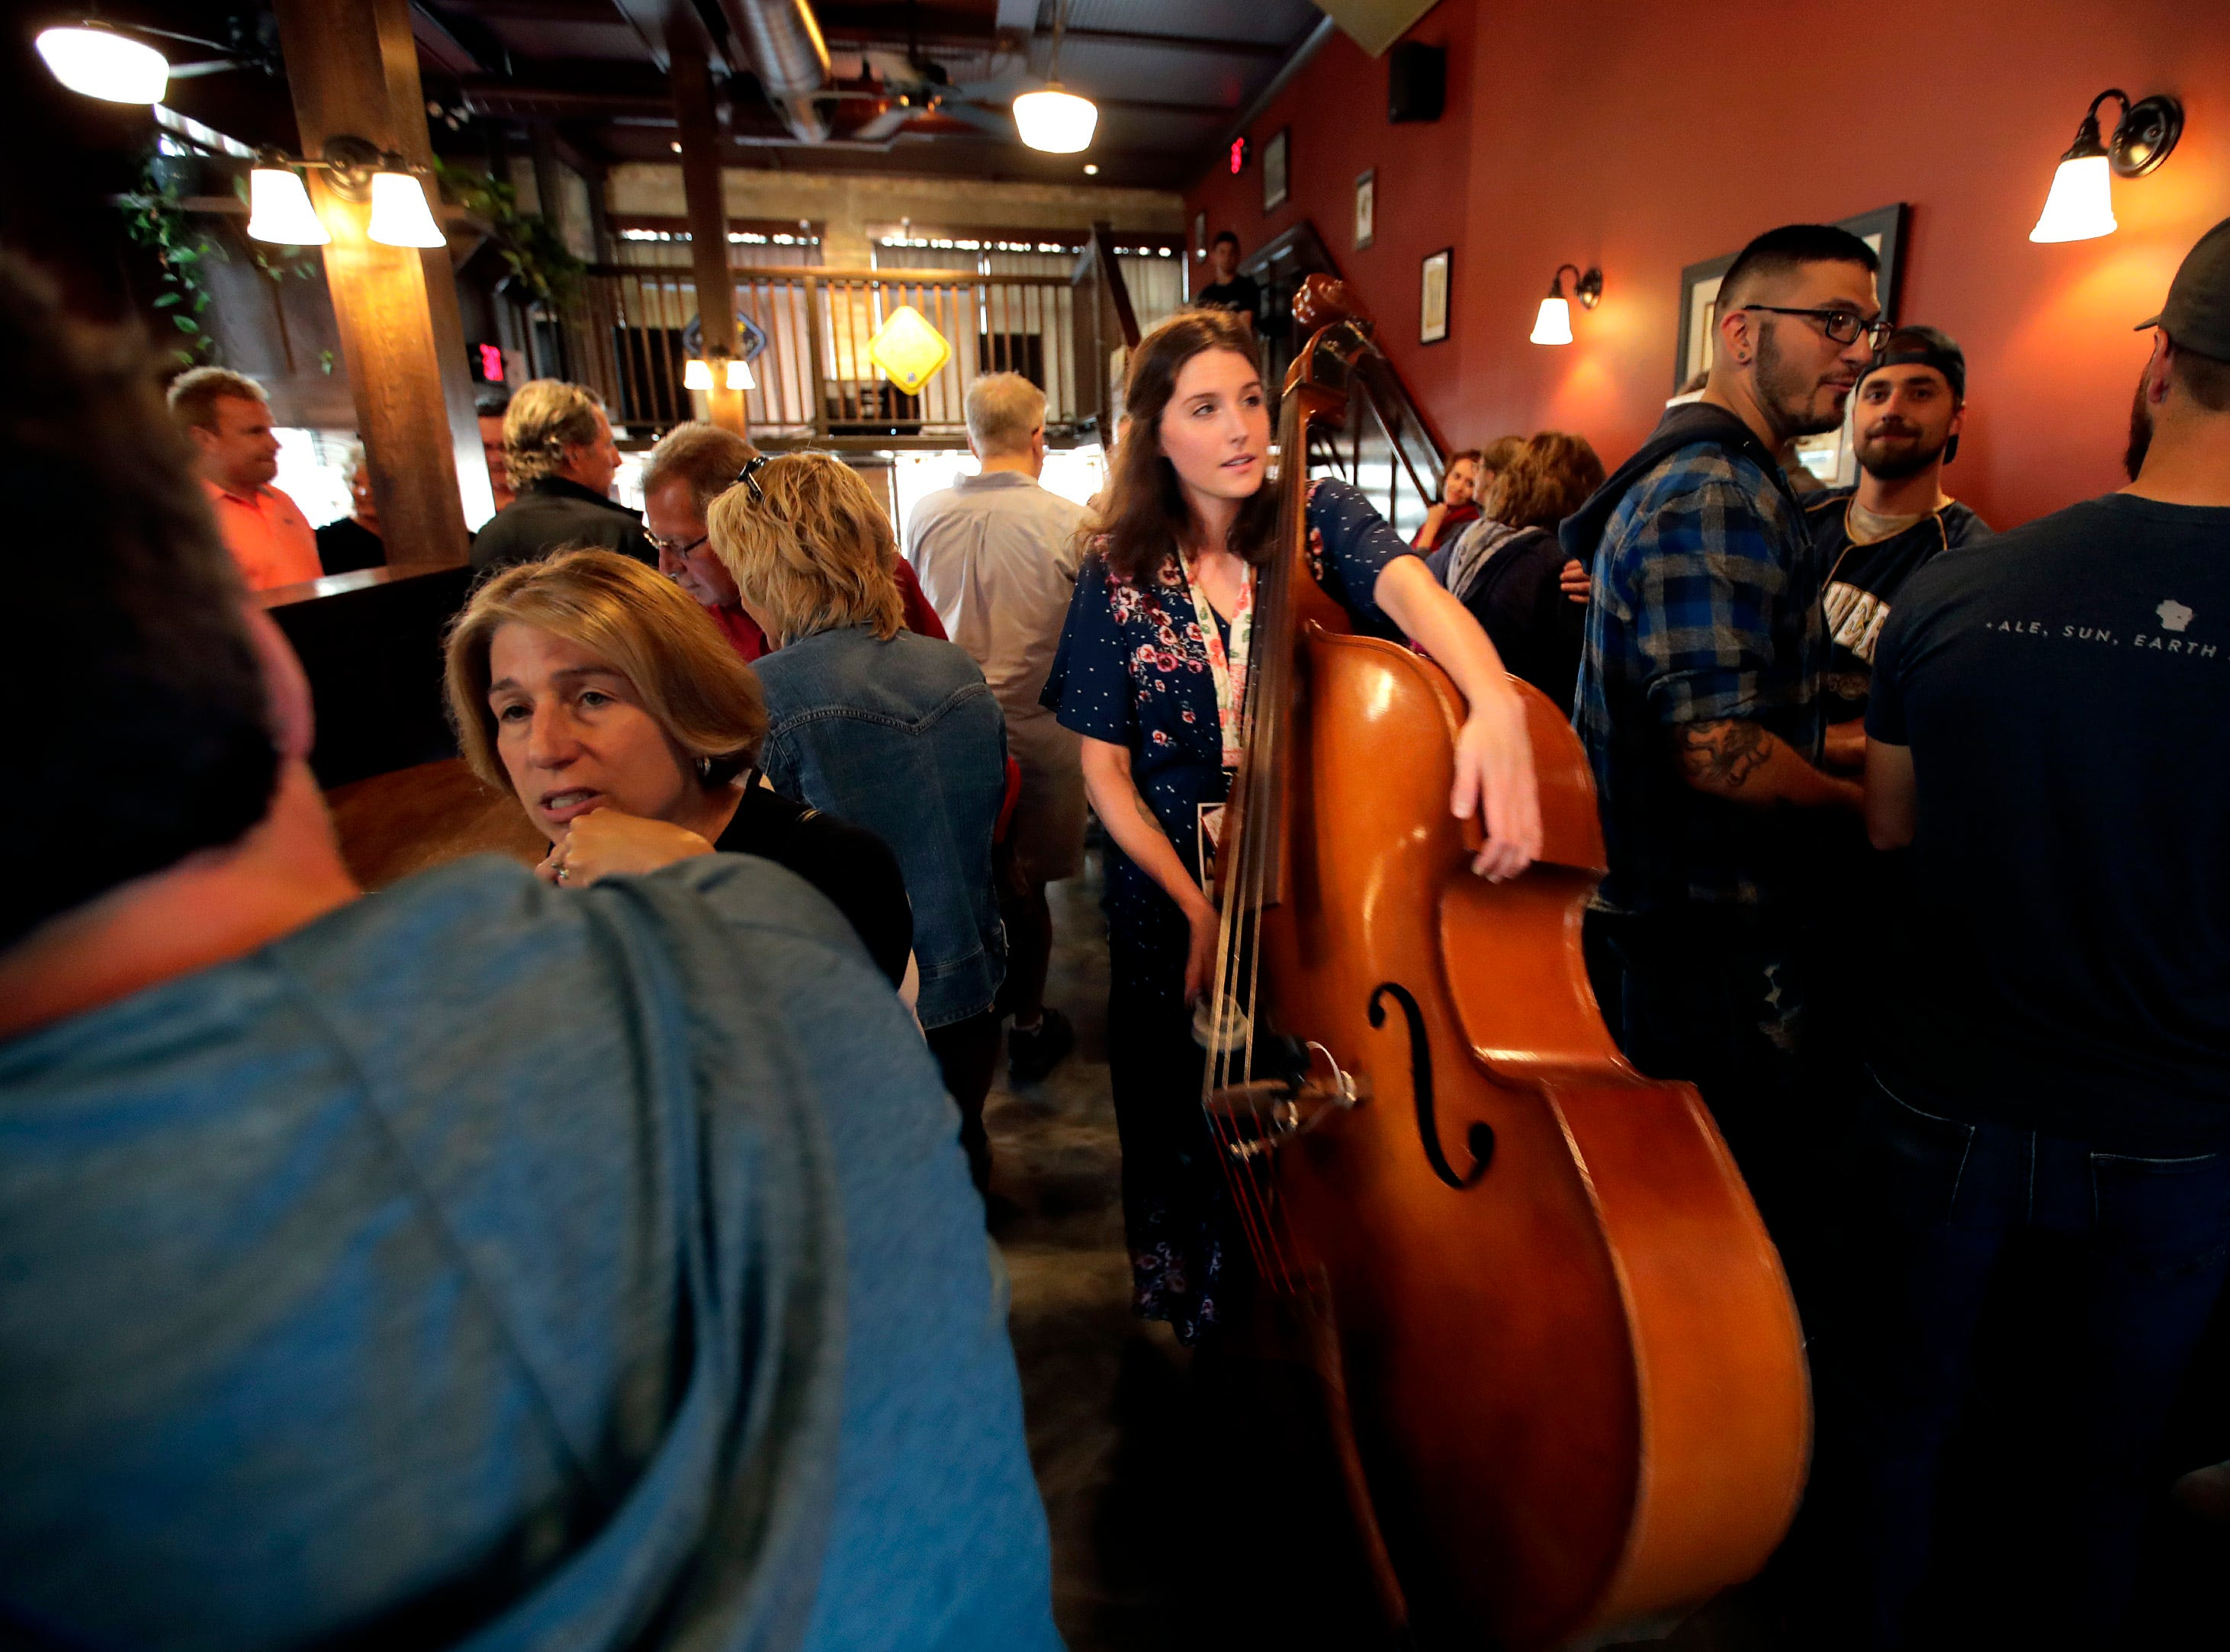 Molly Mathewson, with Last Acre, carries her upright bass out of McFleshman's Brewing Co. after their set during the first day of Mile of Music Thursday, Aug. 2, 2018, in Appleton, Wis. Danny Damiani/USA TODAY NETWORK-Wisconsin